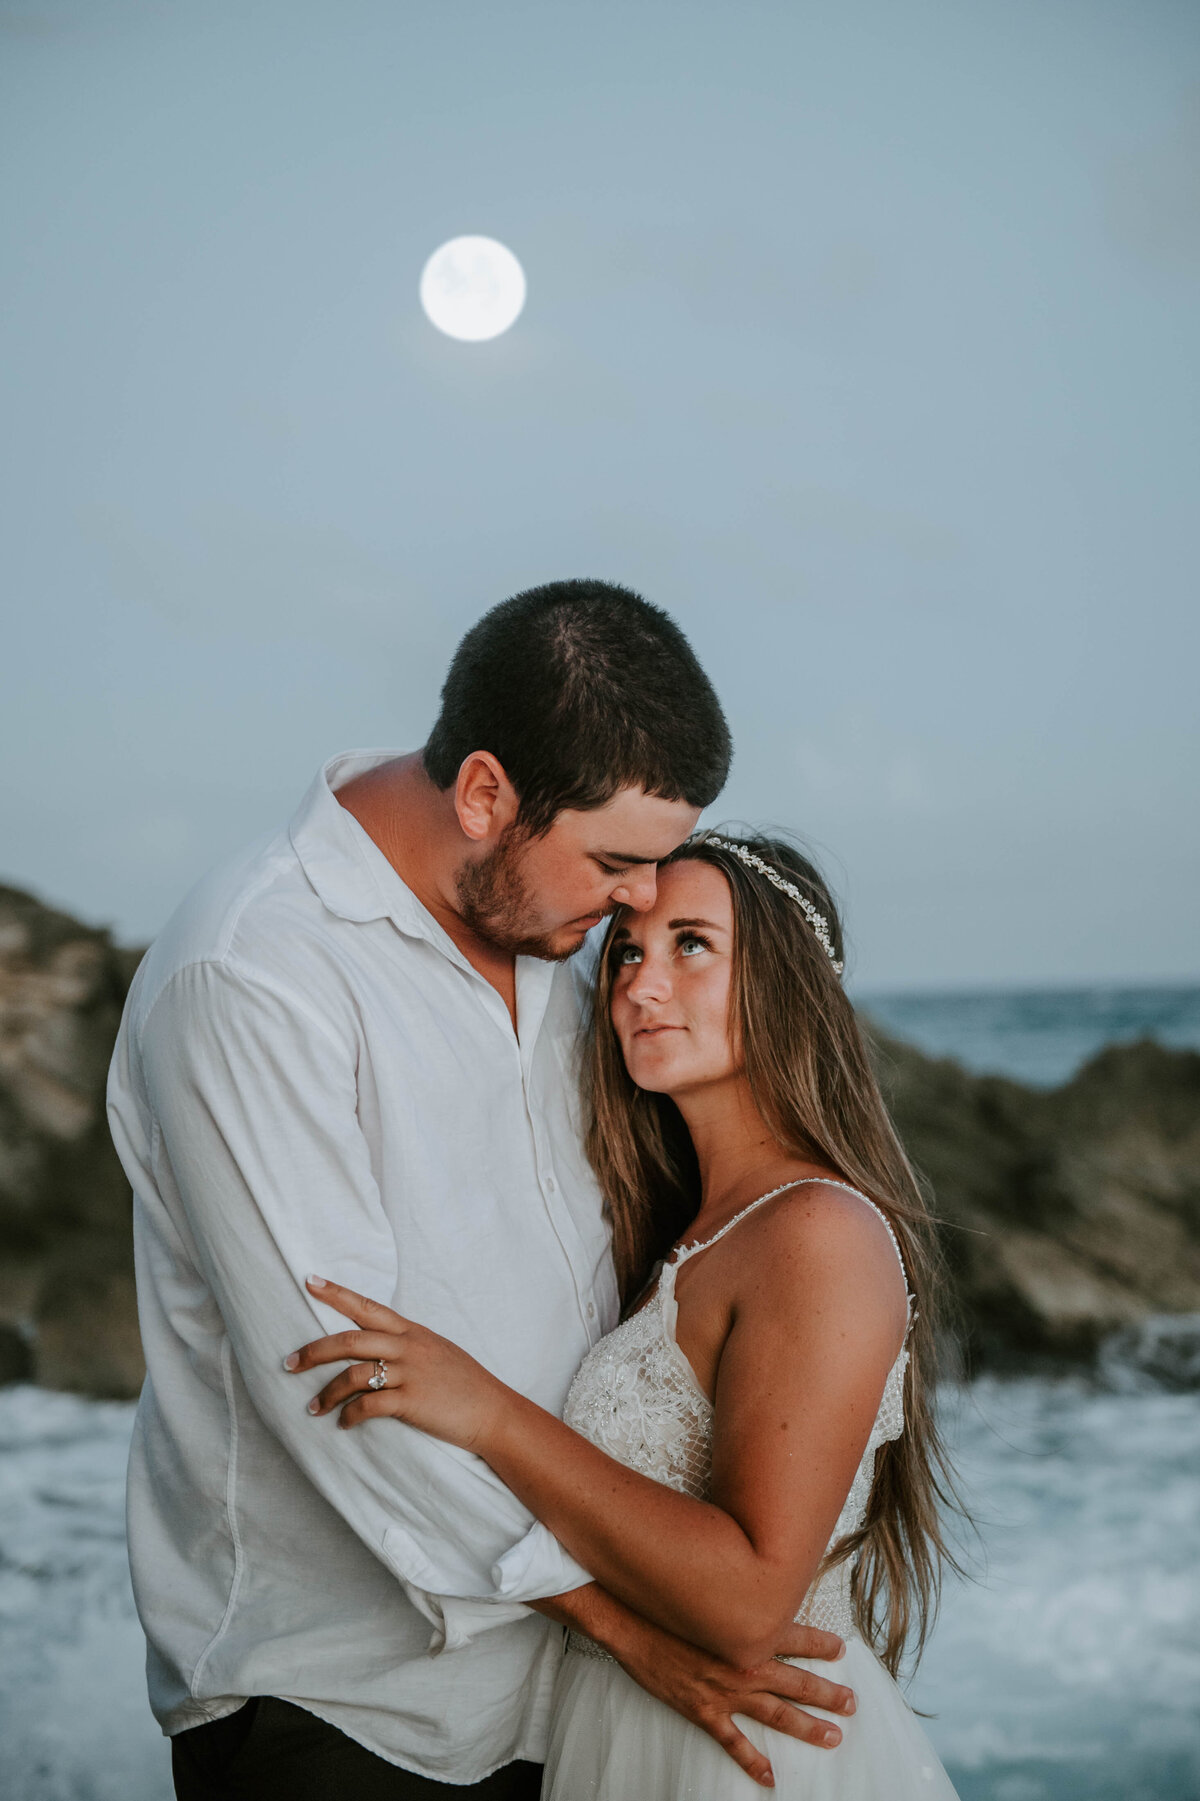 isla-mujeres-wedding-photographer-guthrie-zama-mexico-tulum-cancun-beach-destination-3718